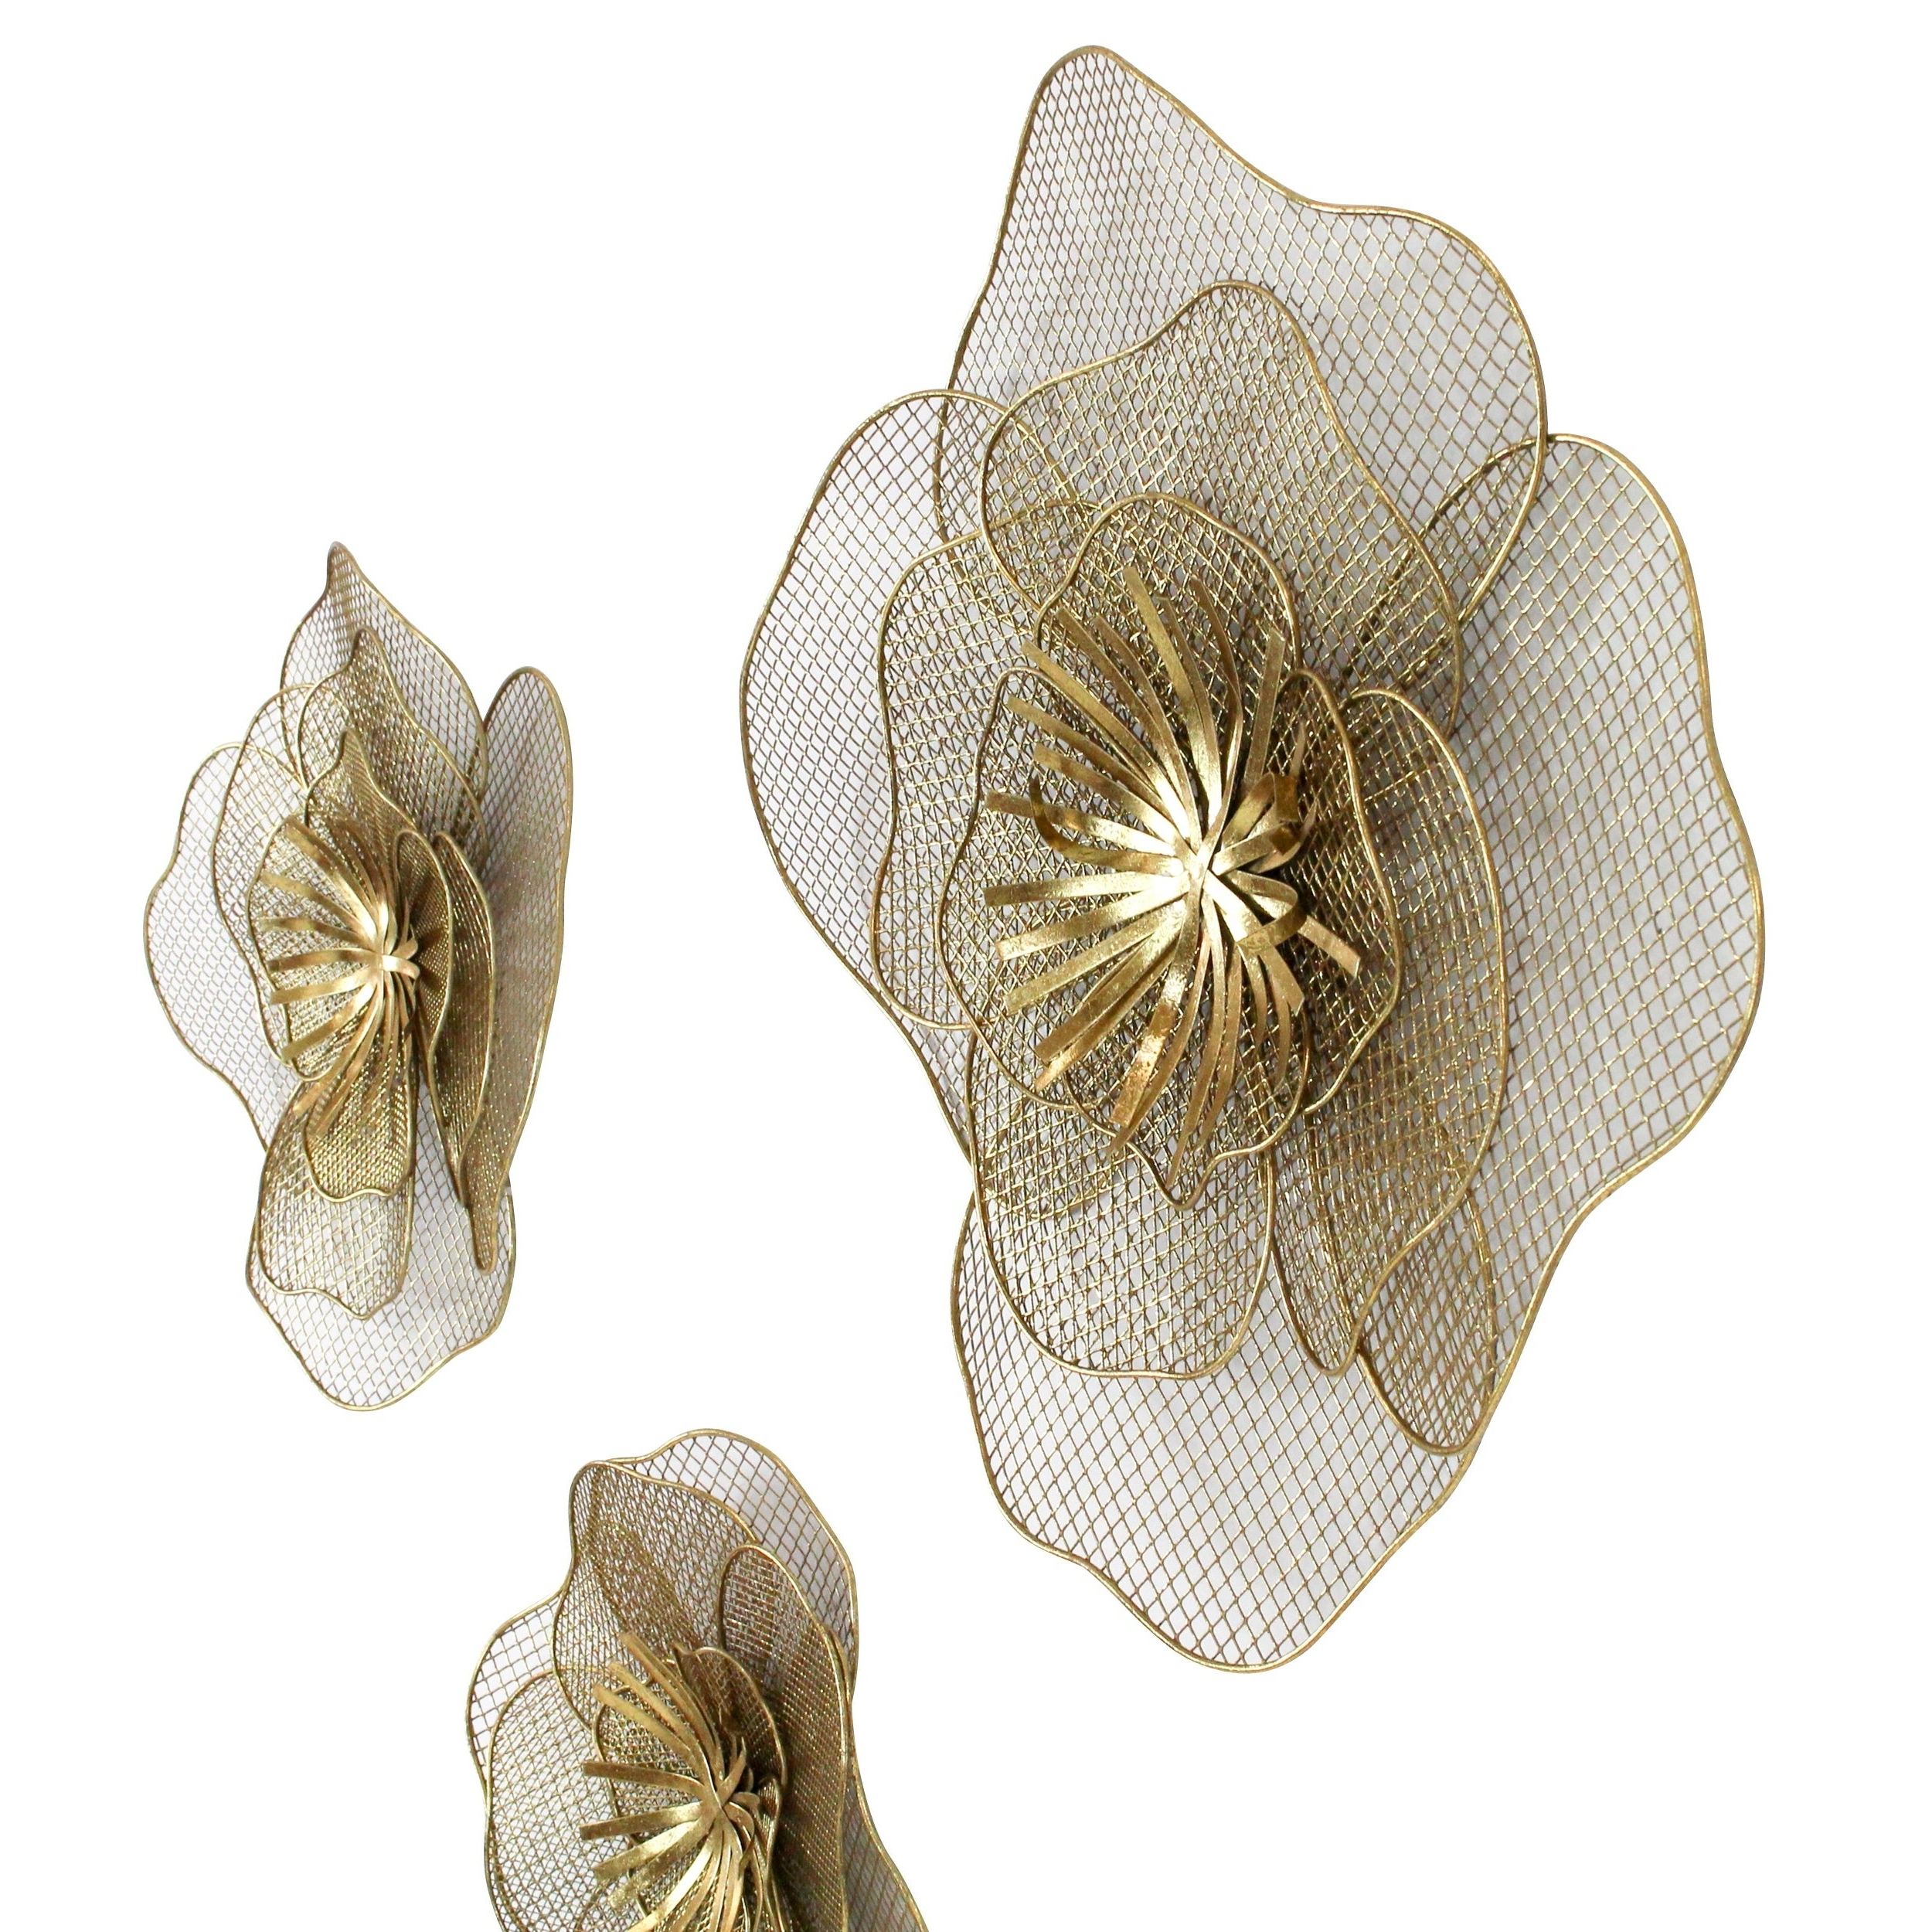 Metal Flower Wall Decor (Set Of 3) For Most Current Shop Lori Metal Flowers Wall Decor (Set Of 3) – Free Shipping Today (Gallery 10 of 20)